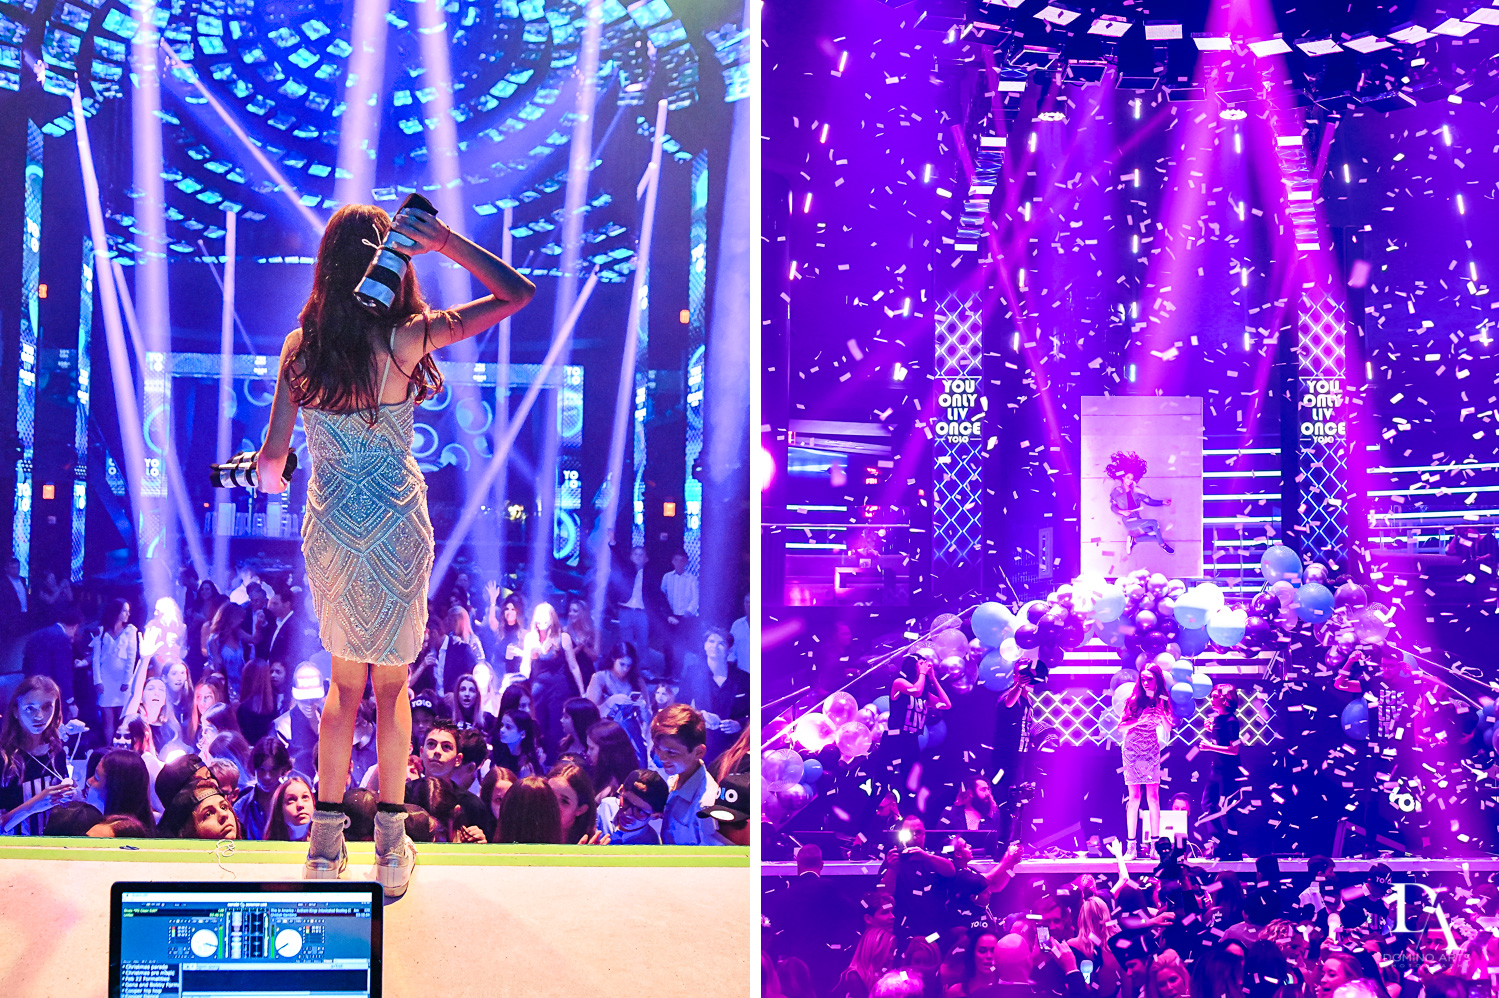 confetti blast at Nightclub Bat Mitzvah at LIV in Fontainebleau Miami by Domino Arts Photography